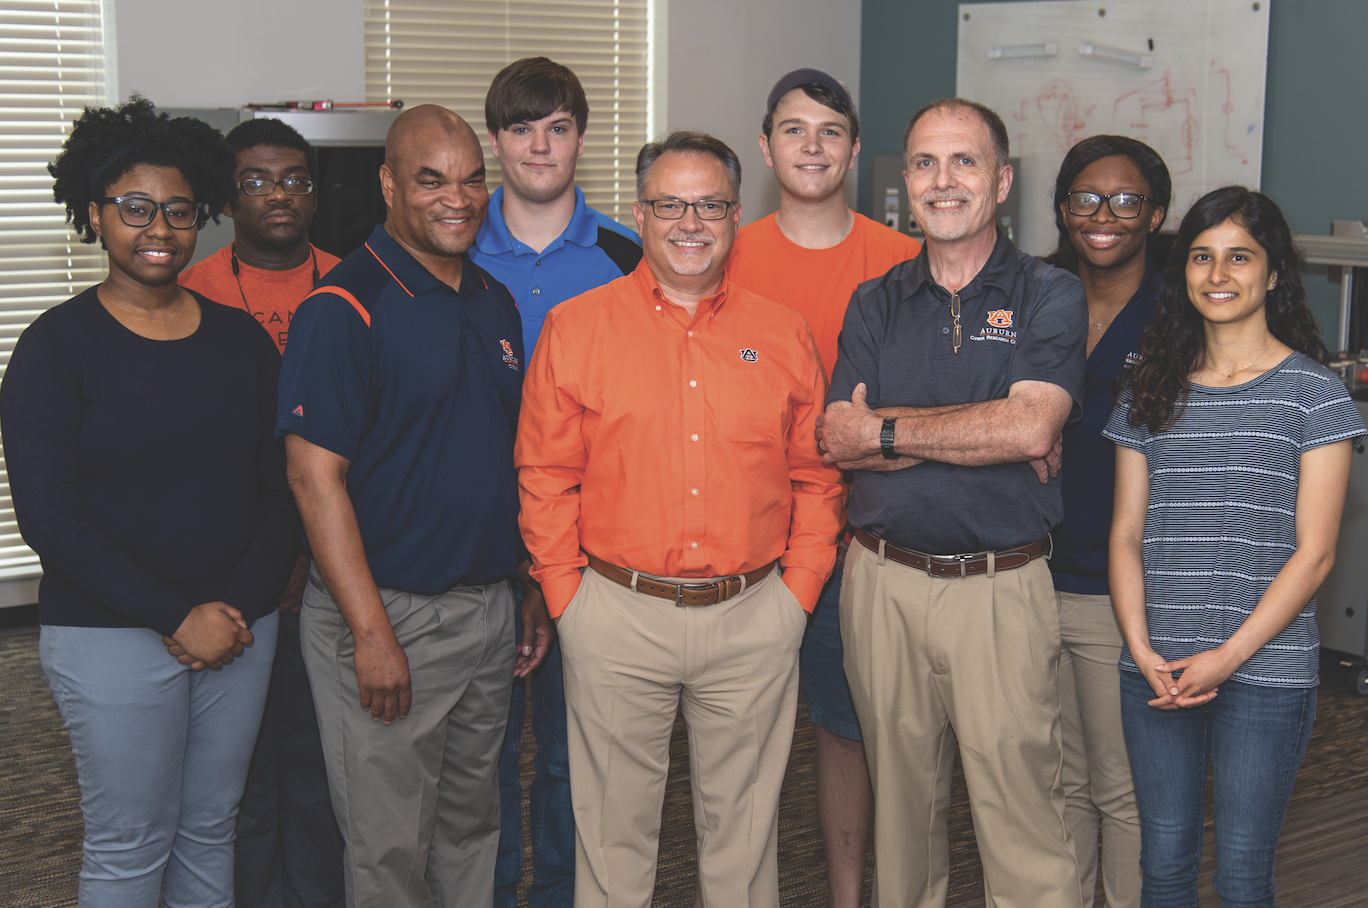 In addition to Cilluffo, Auburn's cyber research efforts are spearheaded by some of the most dynamic faculty and students in the nation, including (L-R) Sadaira Packer, Demarcus Campbell, Gerry Dozier, Dallan Healey, Dean Hendrix, Alex Lewin, David Umphress, Alexicia Richardson and Mina Narayanan.